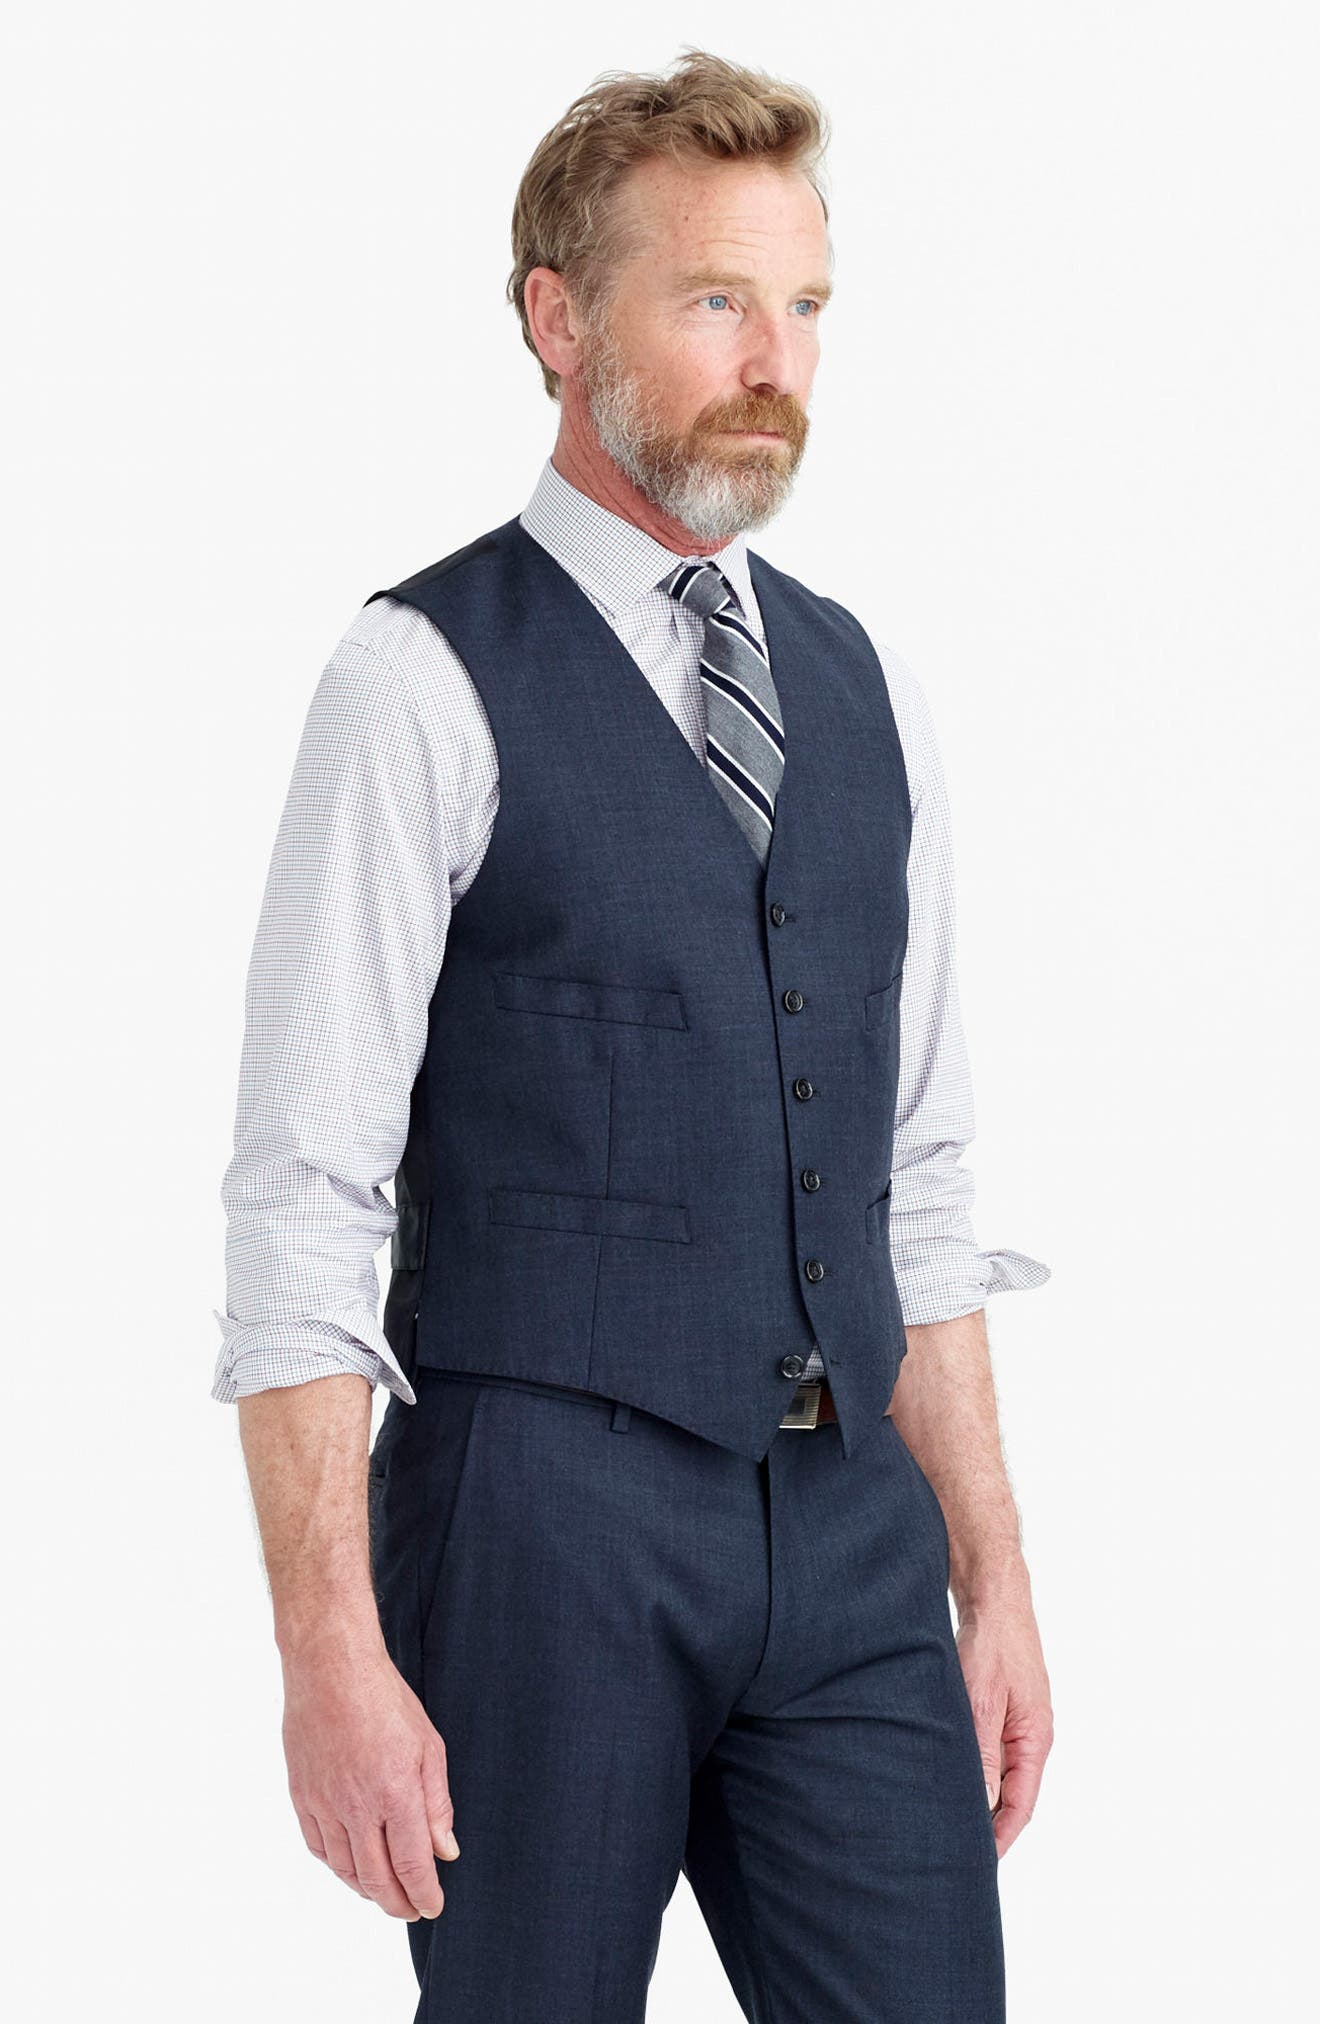 Ludlow Trim Fit Solid Wool Vest,                             Alternate thumbnail 16, color,                             410